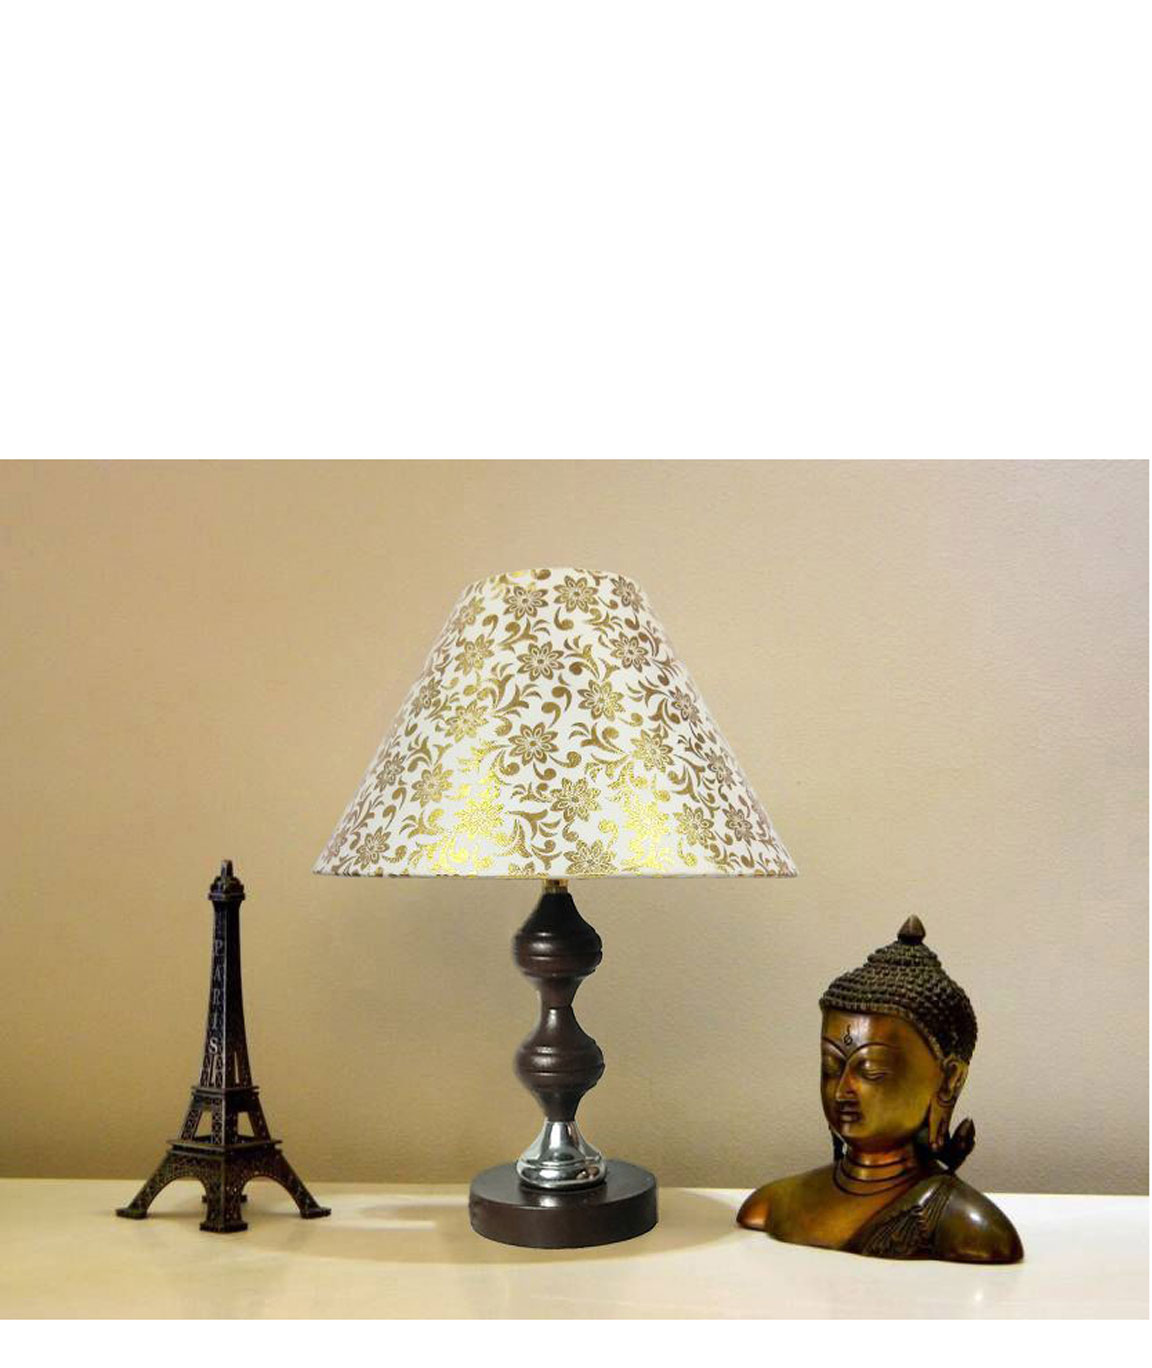 RDC Brown Silver Stand Table Lamp with 10 Inches Round Cream with Golden Designer Lamp Shade